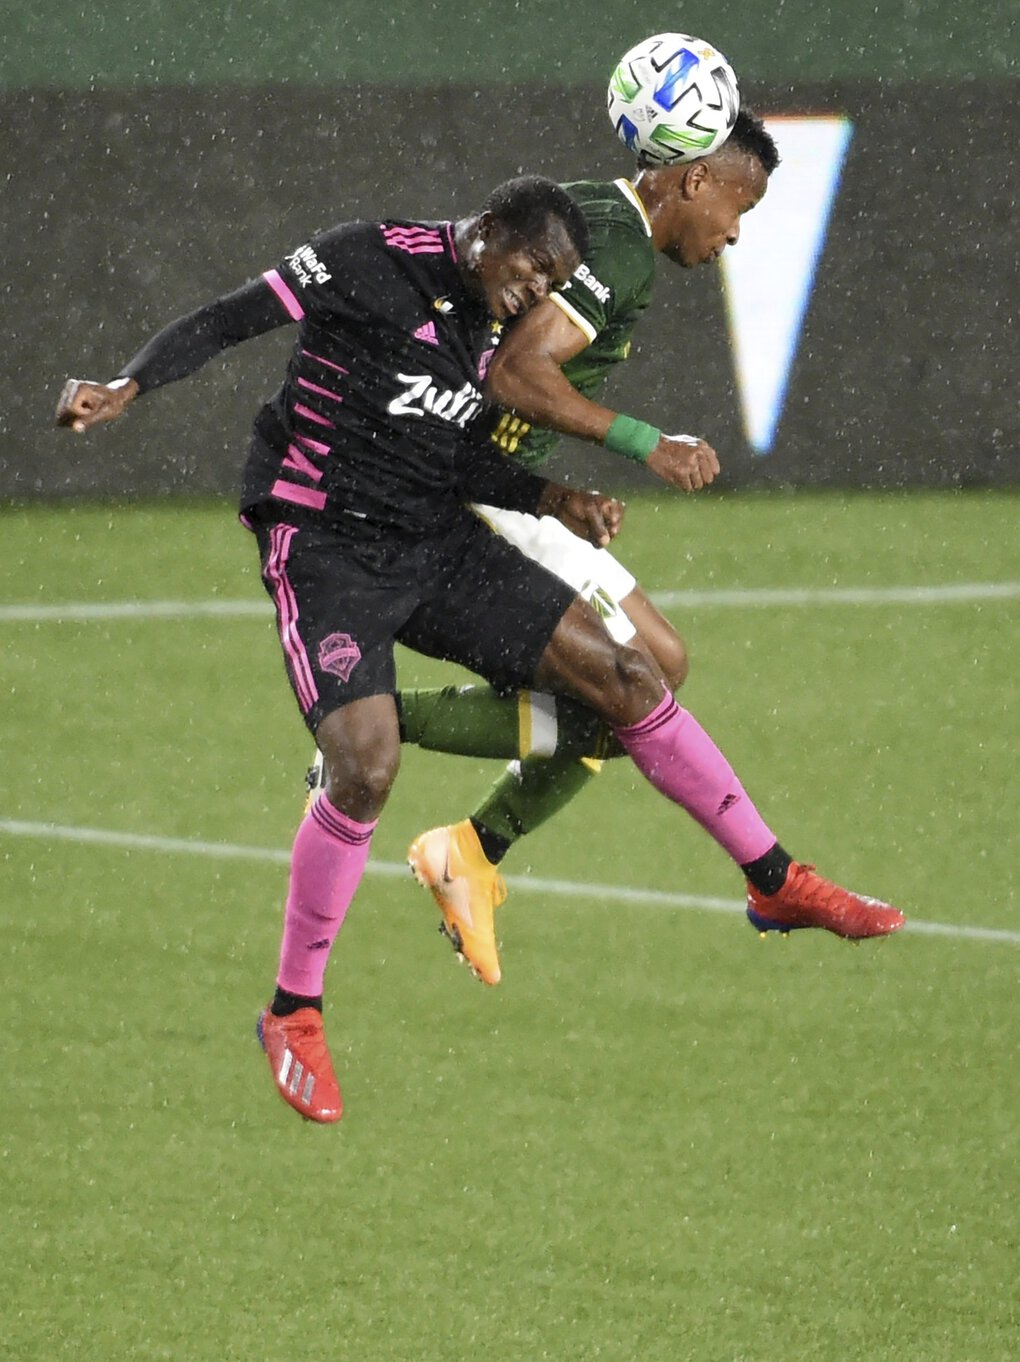 Seattle Sounders defender Nouhou Tolo, and Portland Timbers forward Jeremy Ebobisse go up for a header during the first half in Portland on Wednesday. (Steve Dykes / Associated Press)